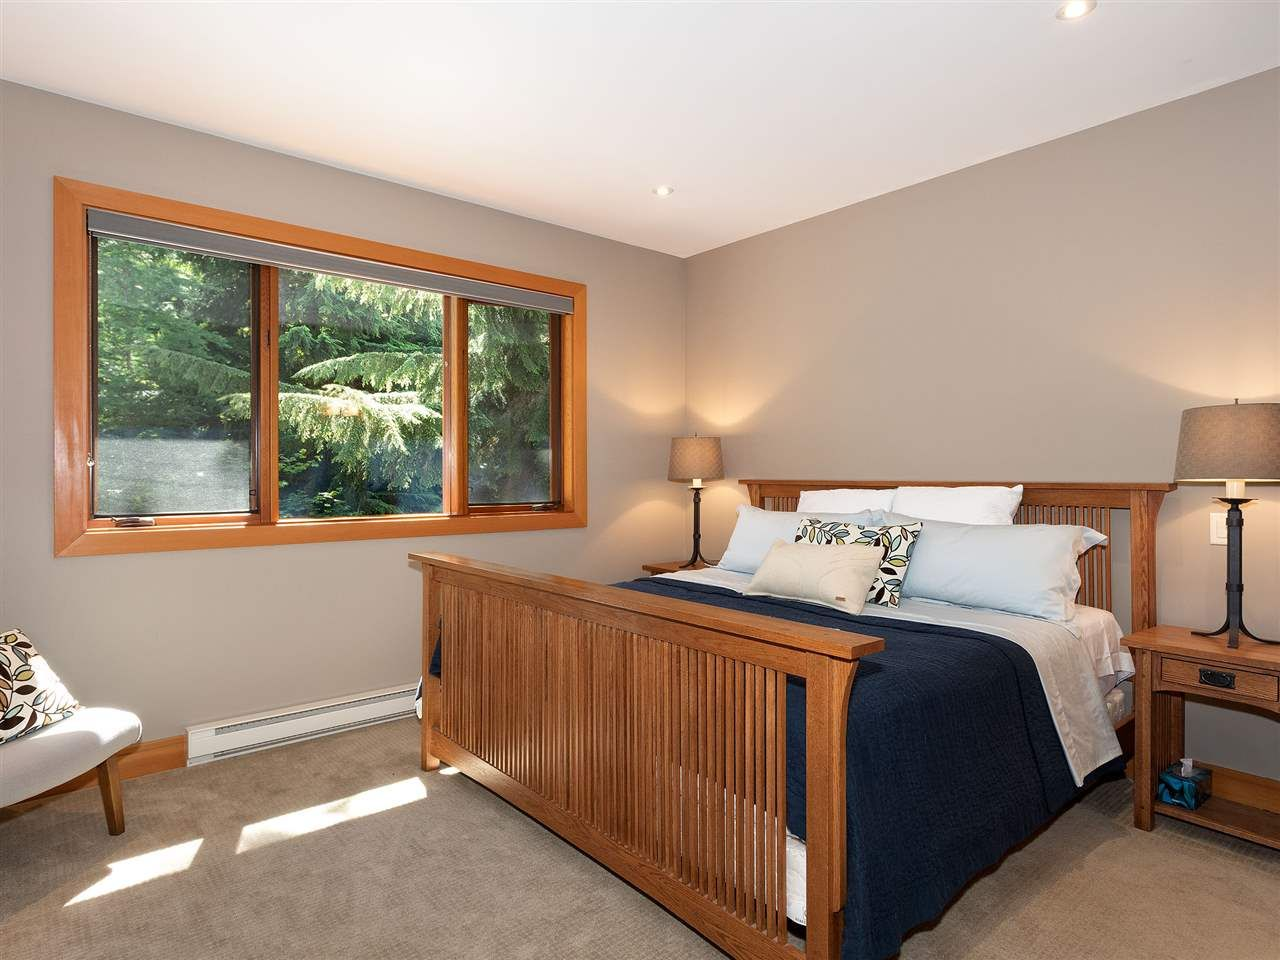 Photo 18: Photos: 3217 ARCHIBALD WAY in Whistler: Alta Vista House for sale : MLS®# R2468991